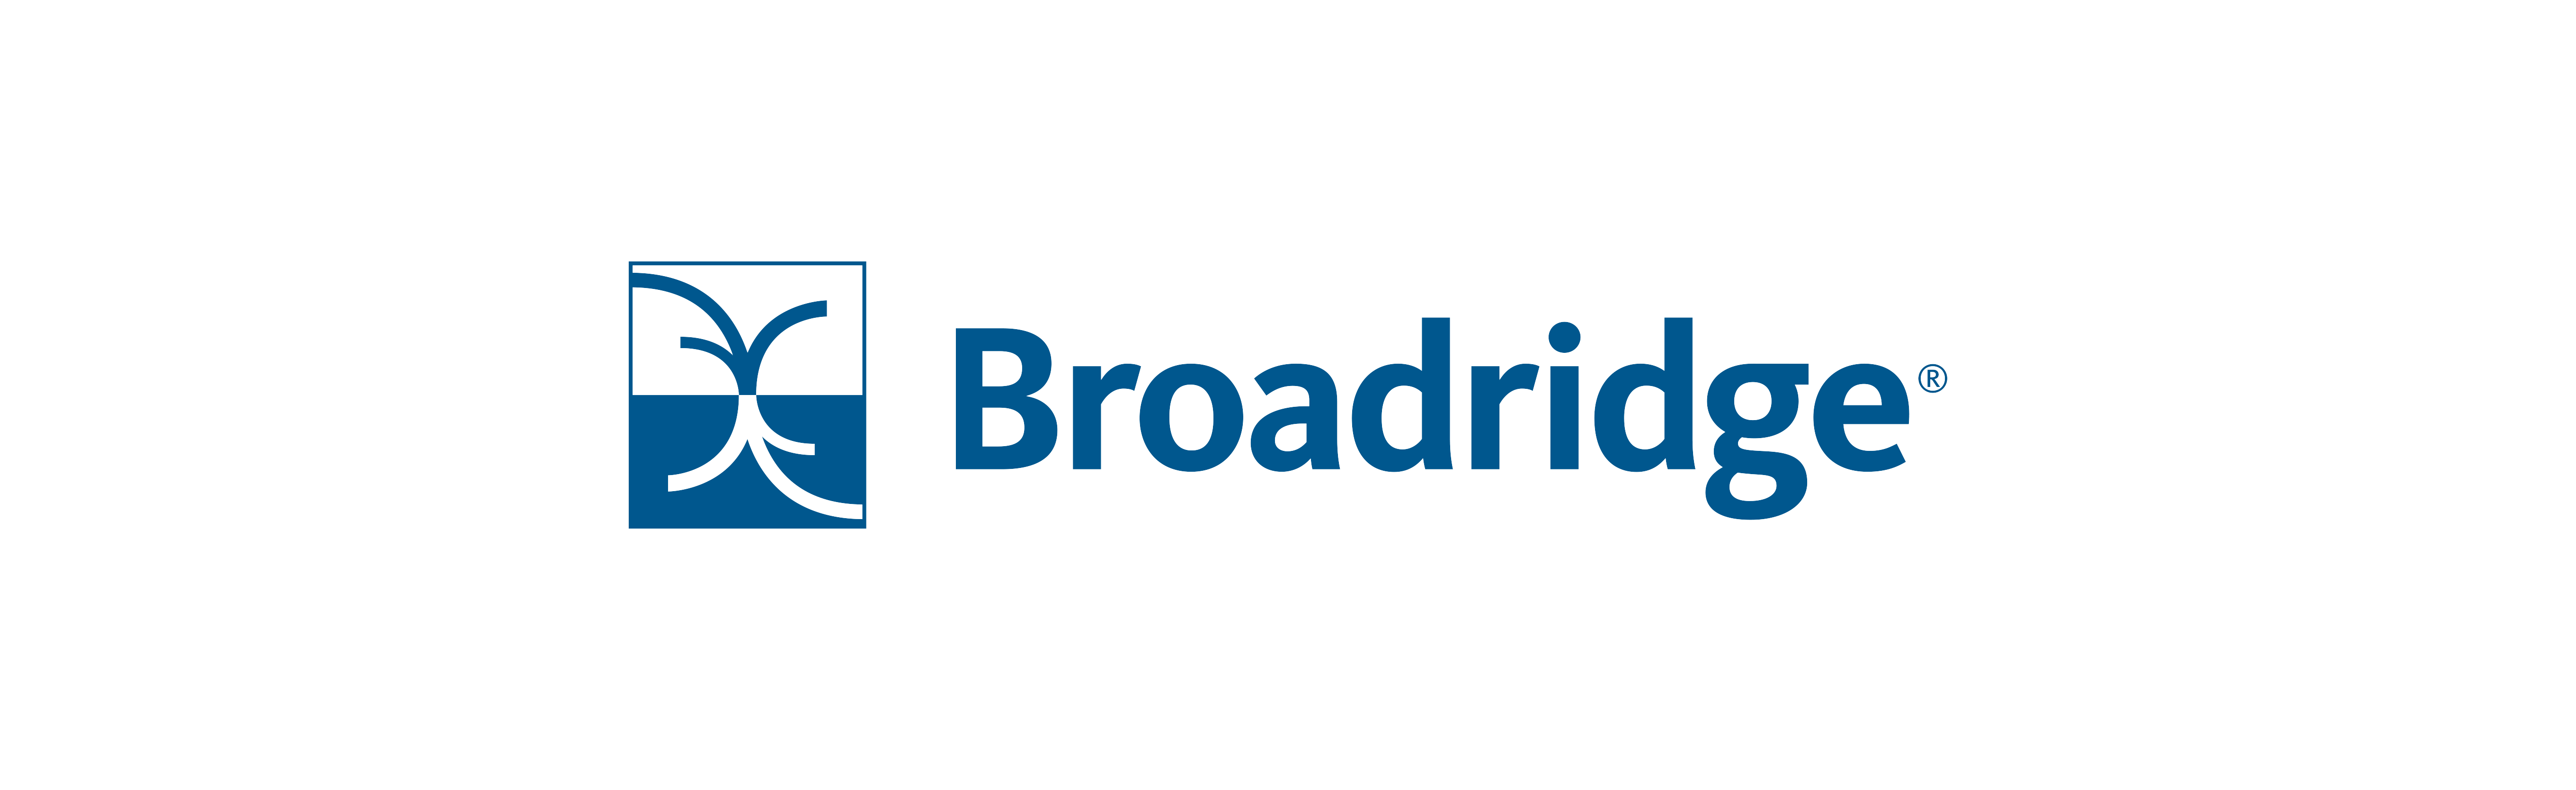 Broadridge Integrates FundApps' Automated Compliance Solution into Portfolio and Order Management Capabilities